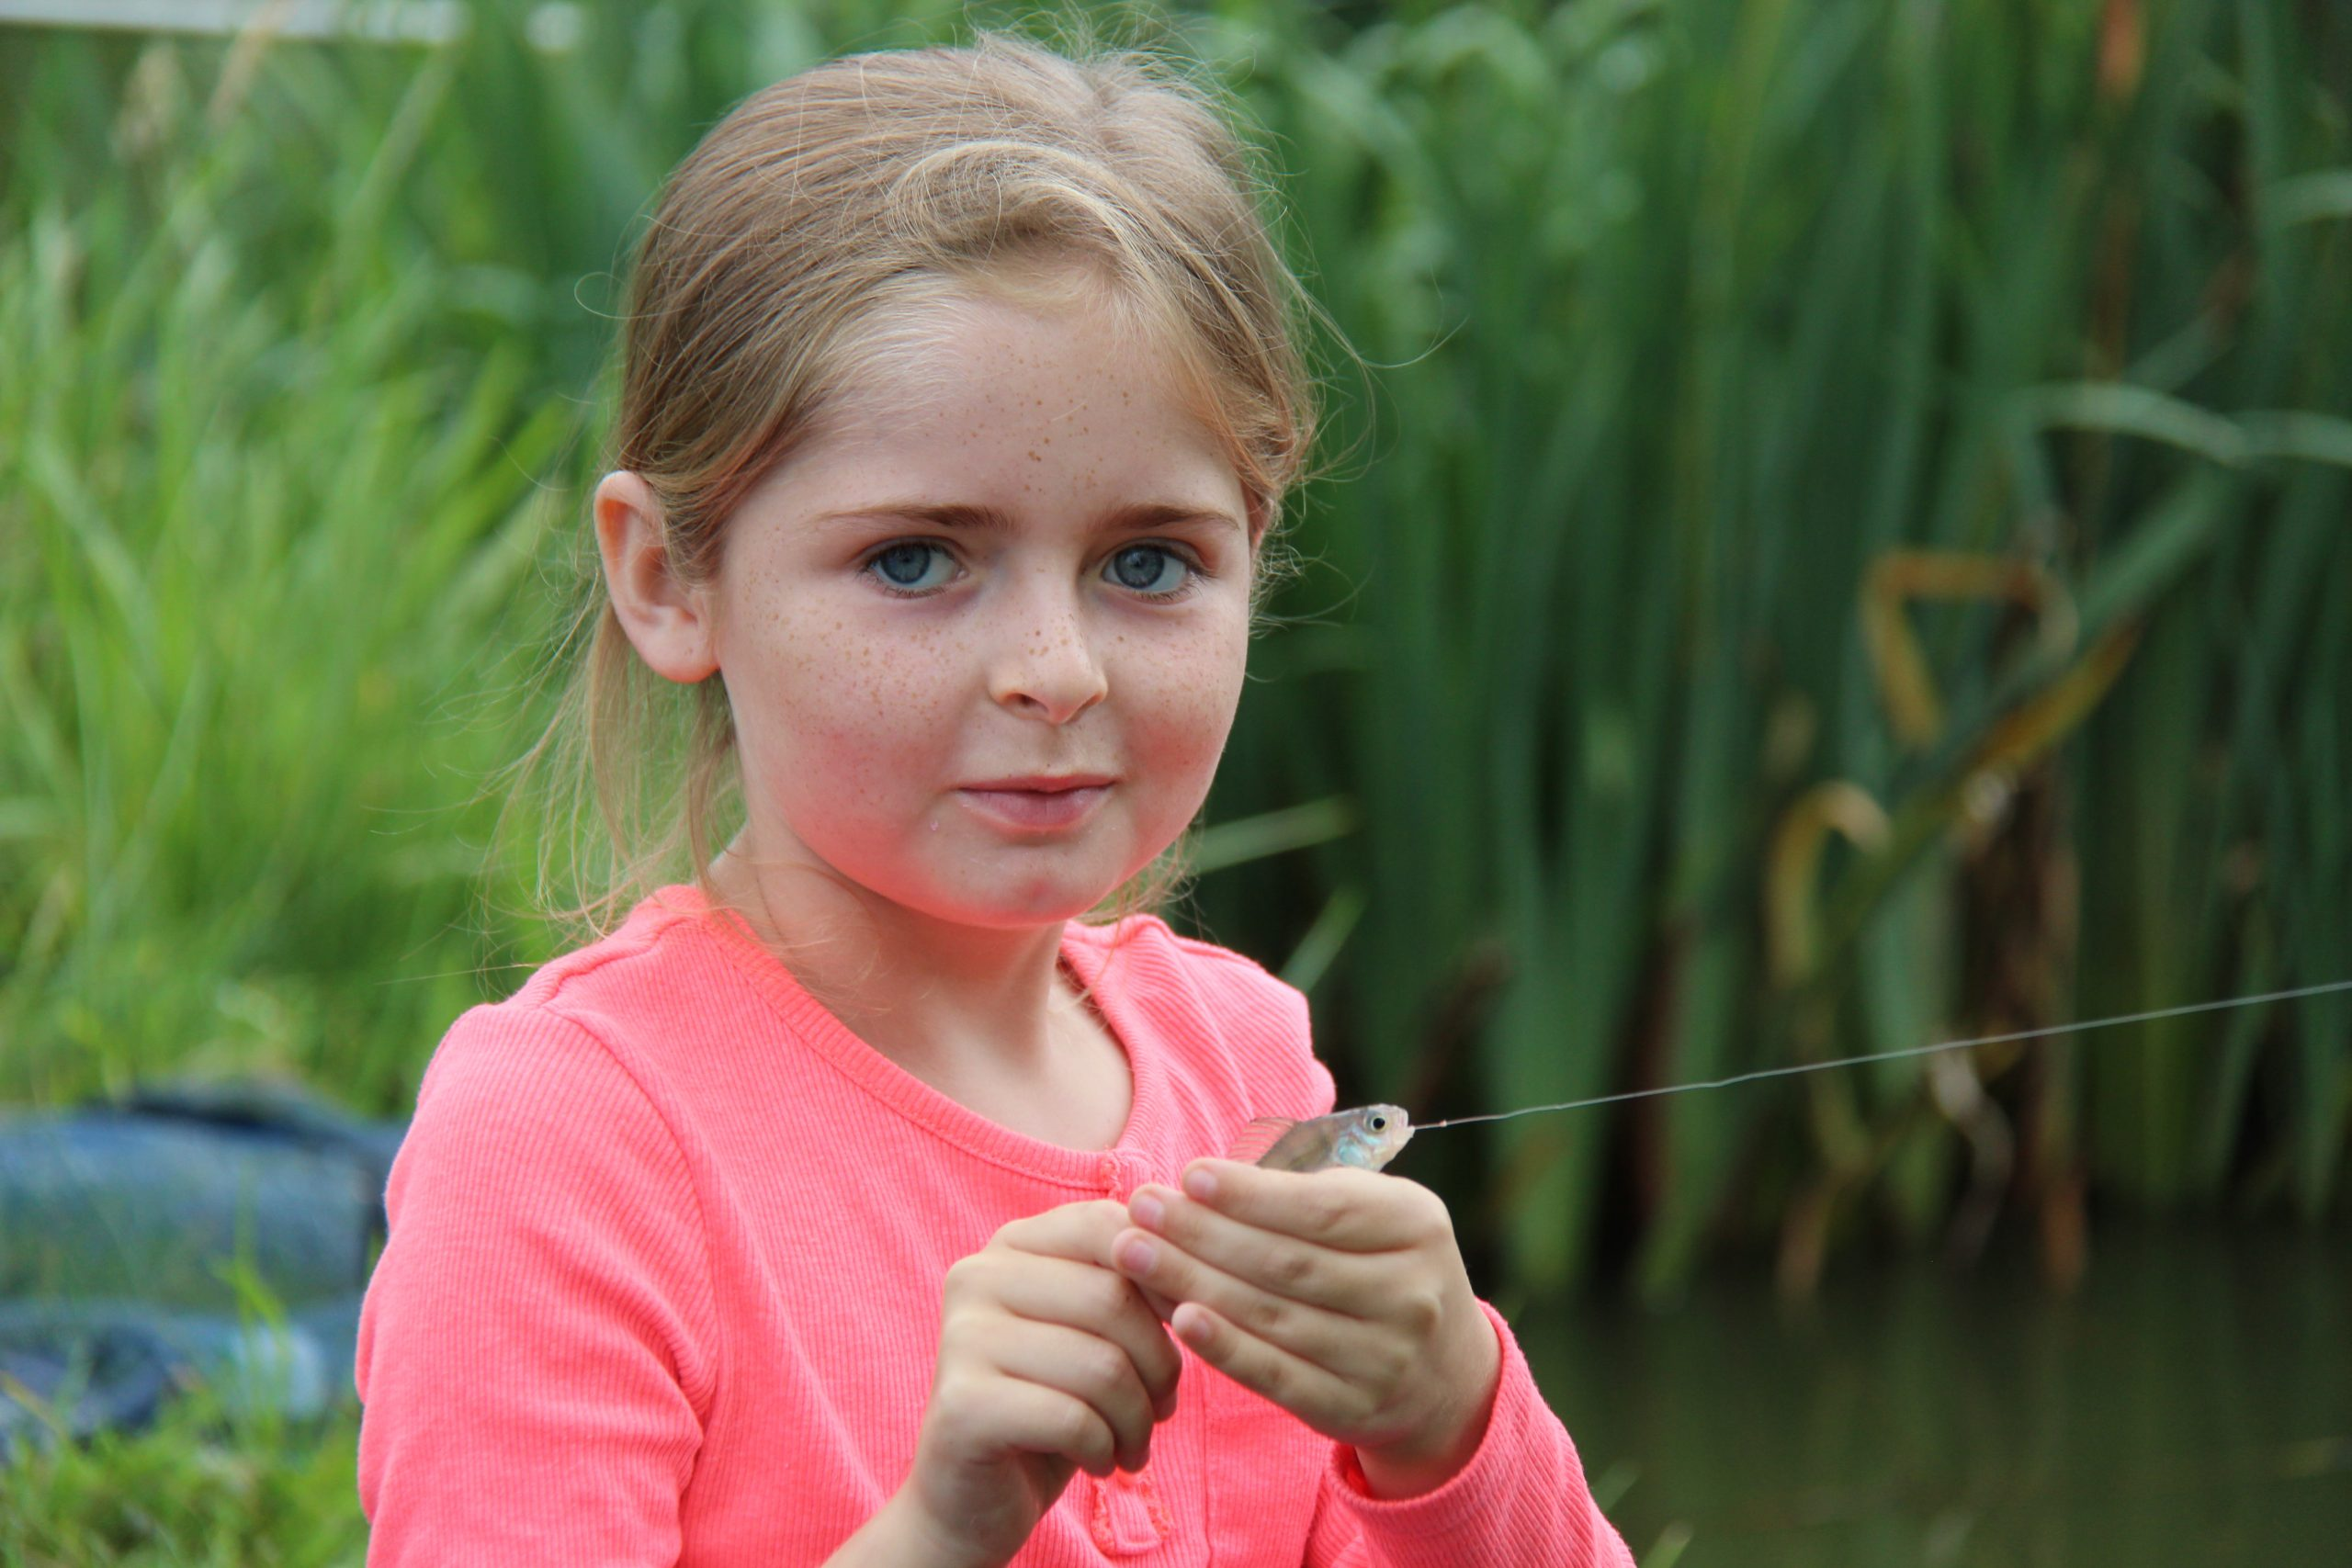 Get Fishing - a young girl with a fish